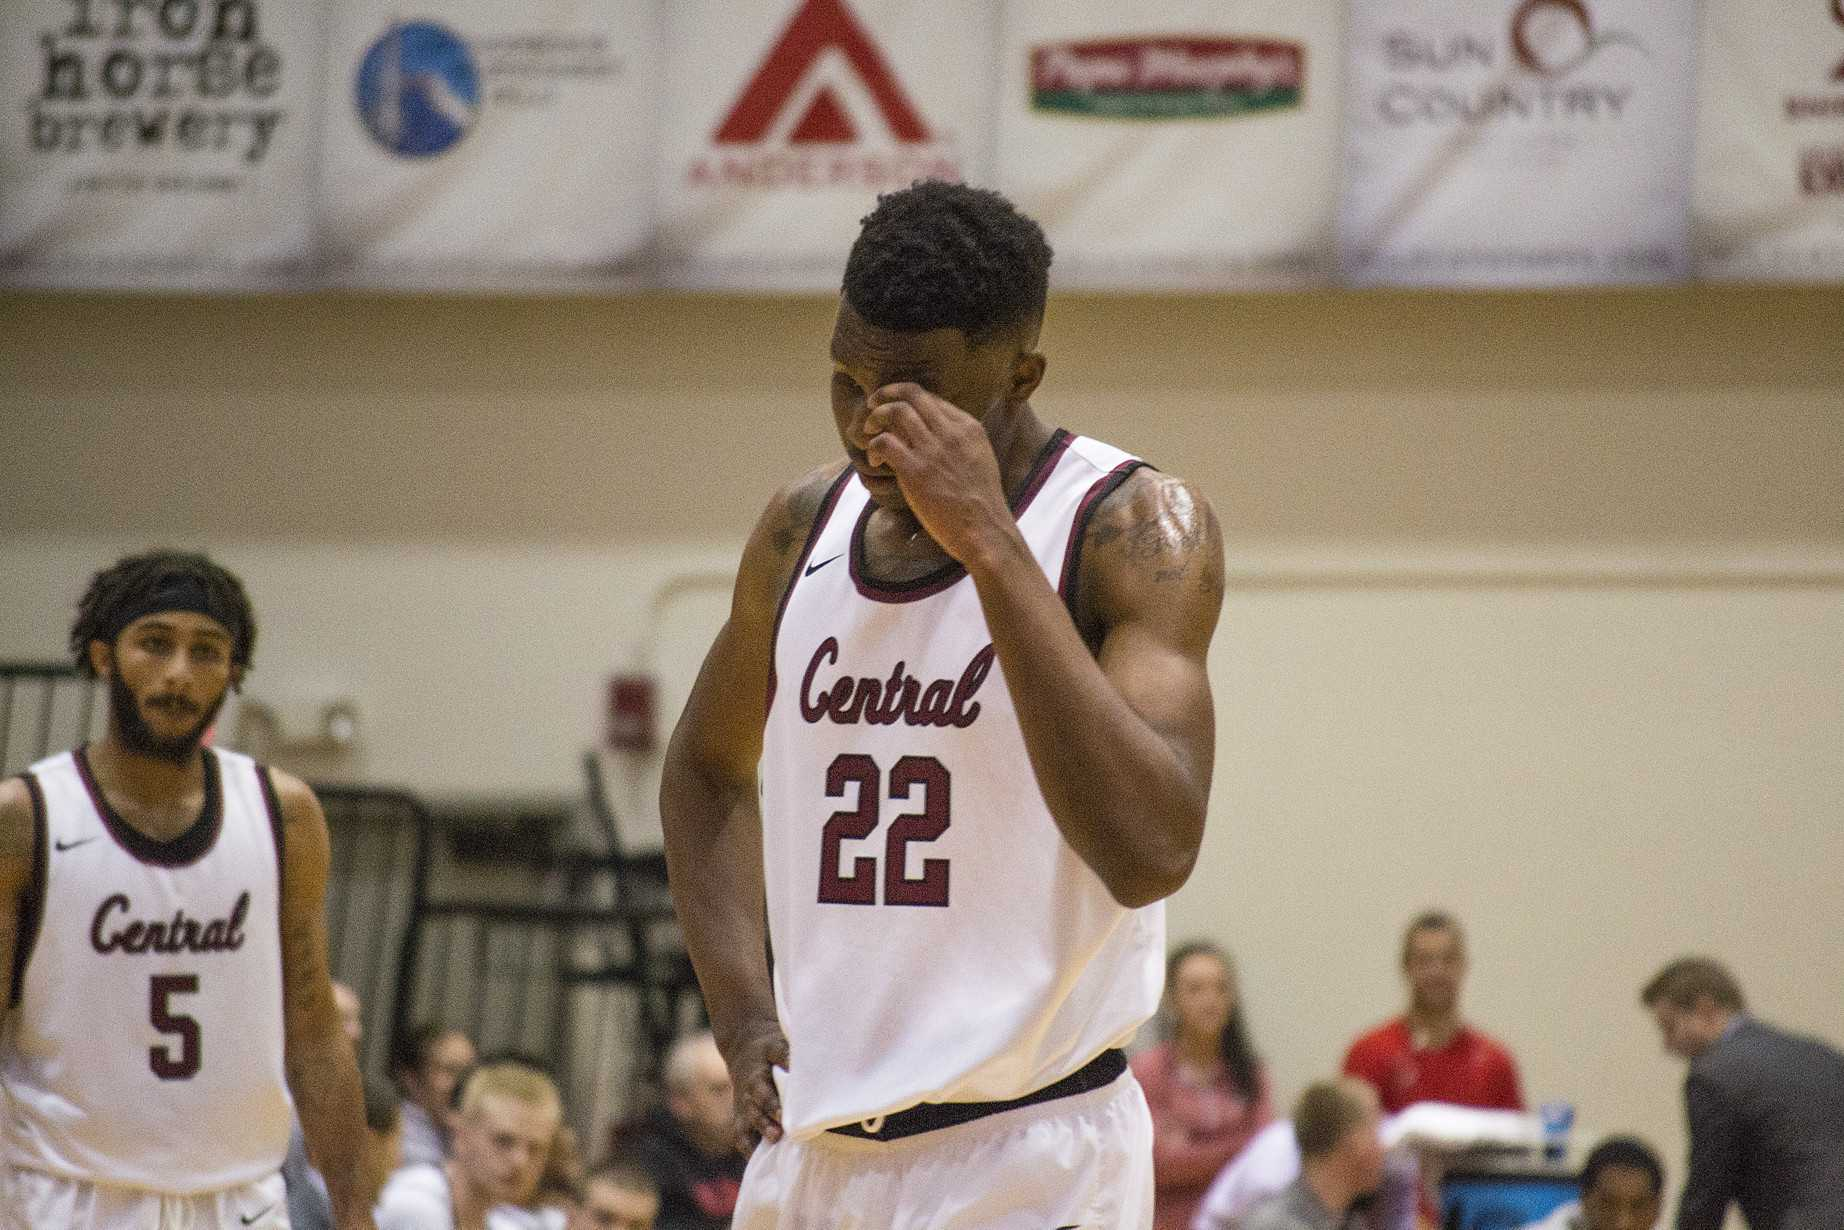 Senior forward Joseph Stroud shows frustration during the Wildcats' 21-point loss.